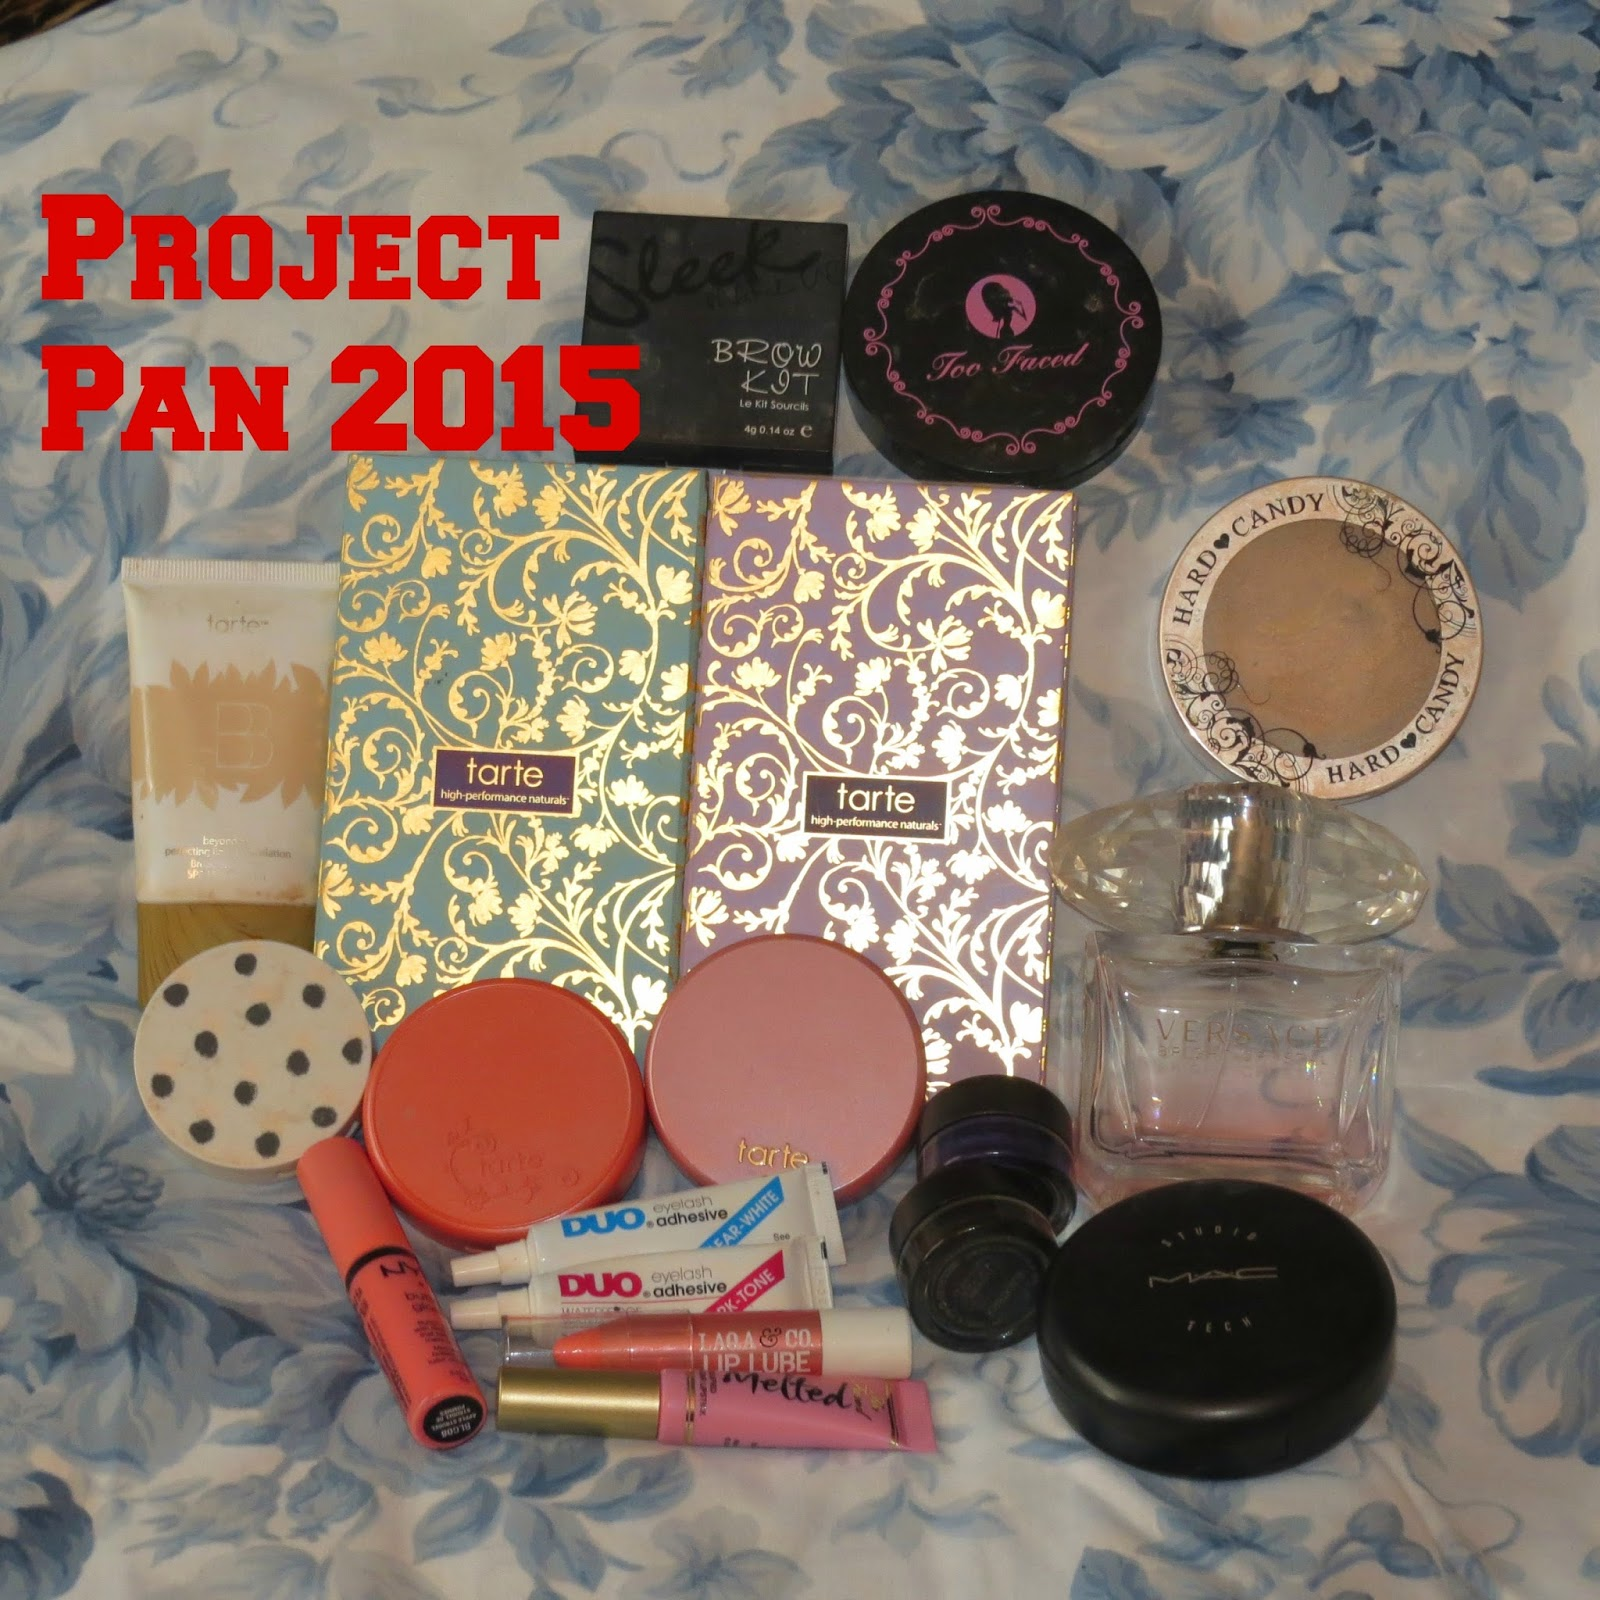 project pan, spending ban, project pan tarte, project pan 2015, project pan with spending ban, spending ban 2015, college project pan, college spending ban, a beauty and the business,